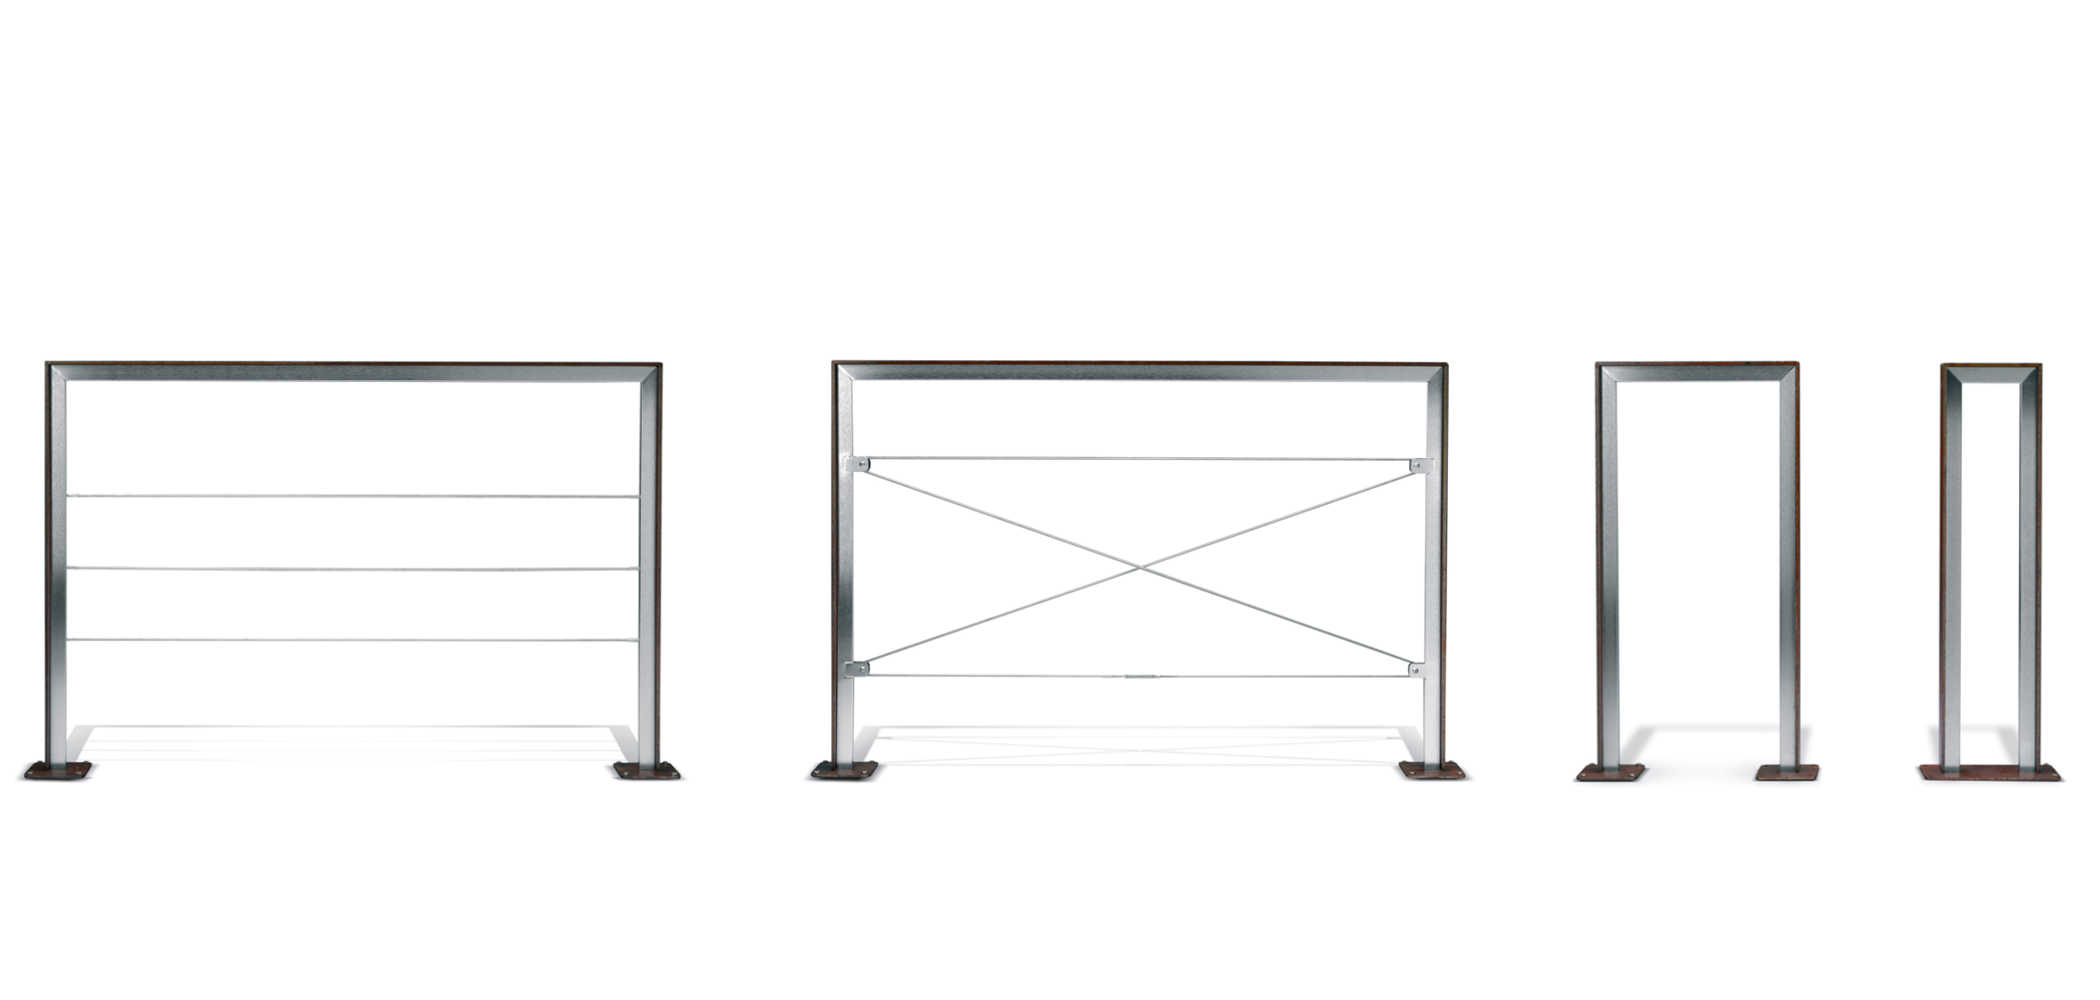 VERSO P-X-490-240 BARRIERS